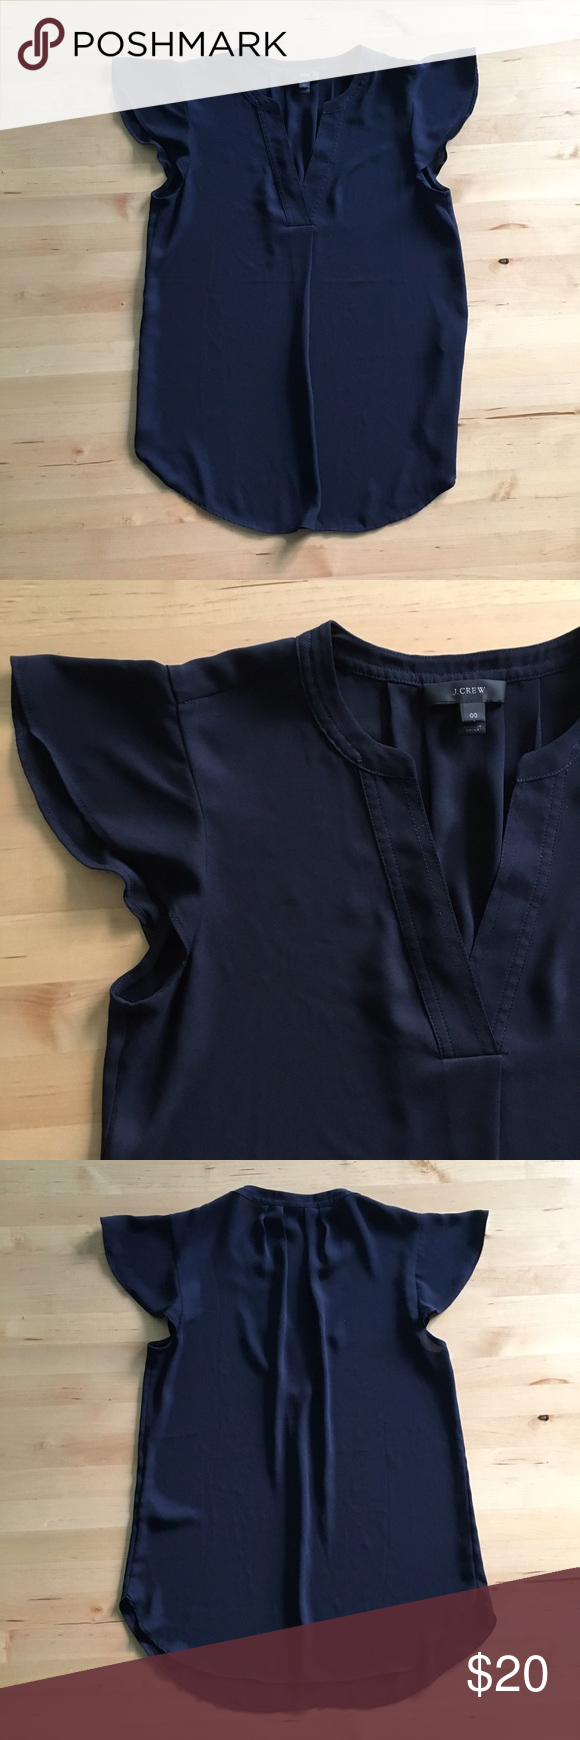 J. Crew Flutter Sleeve Top Navy flutter sleeve blouse, perfect business attire. Made of silky polyester that feels great on the skin and doesn't wrinkle easily. Great condition. J. Crew Tops Blouses